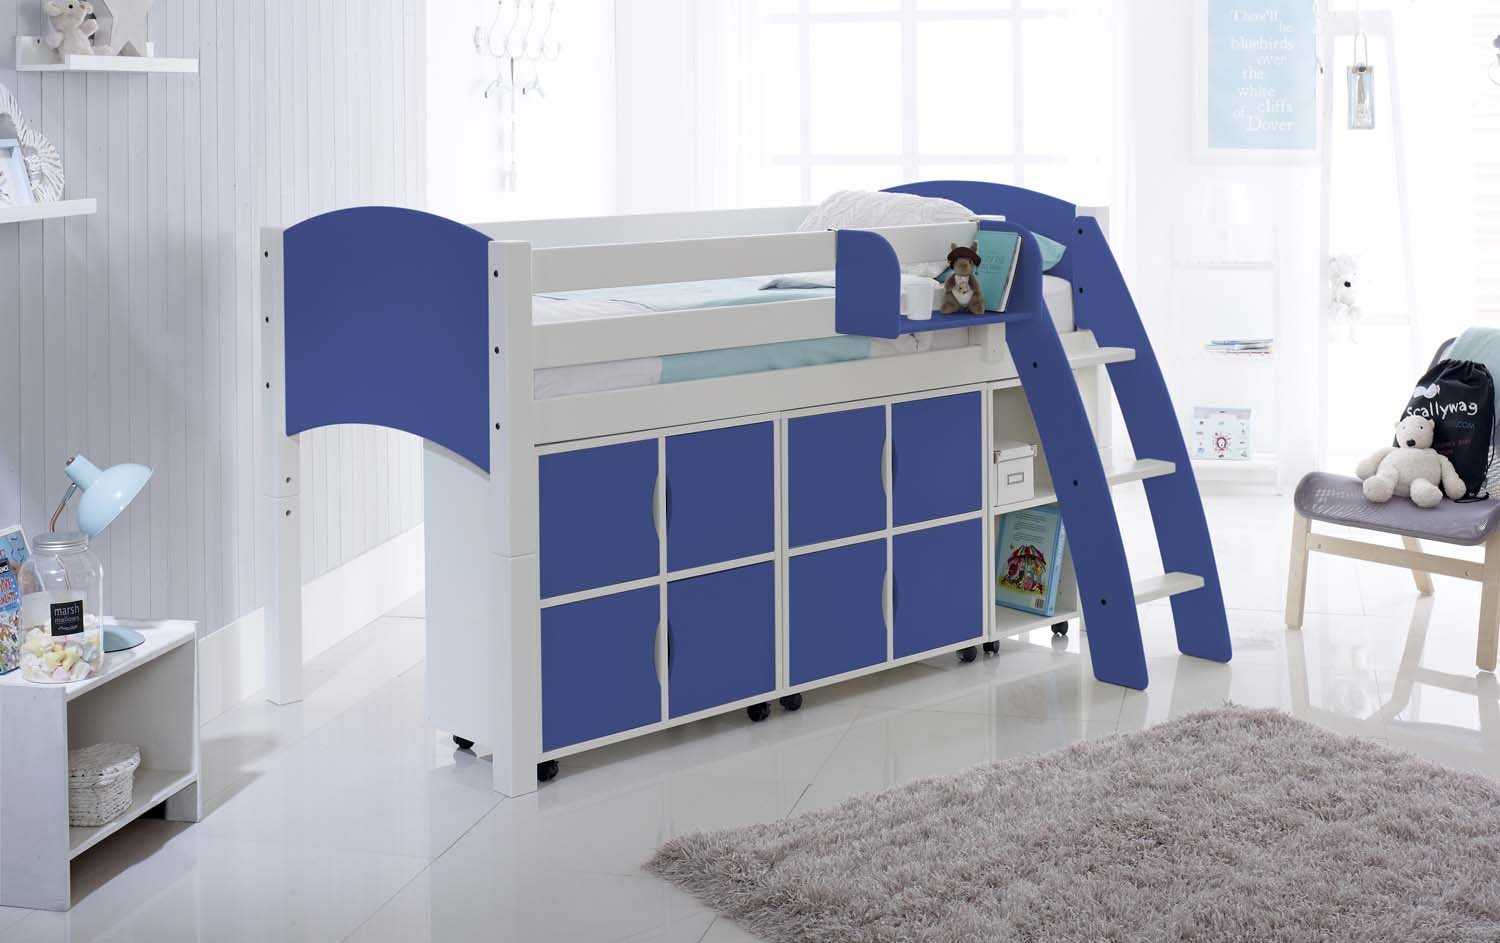 Small Box Room Cabin Bed: Midsleeper Cabin Bed With Storage Units & Shelves